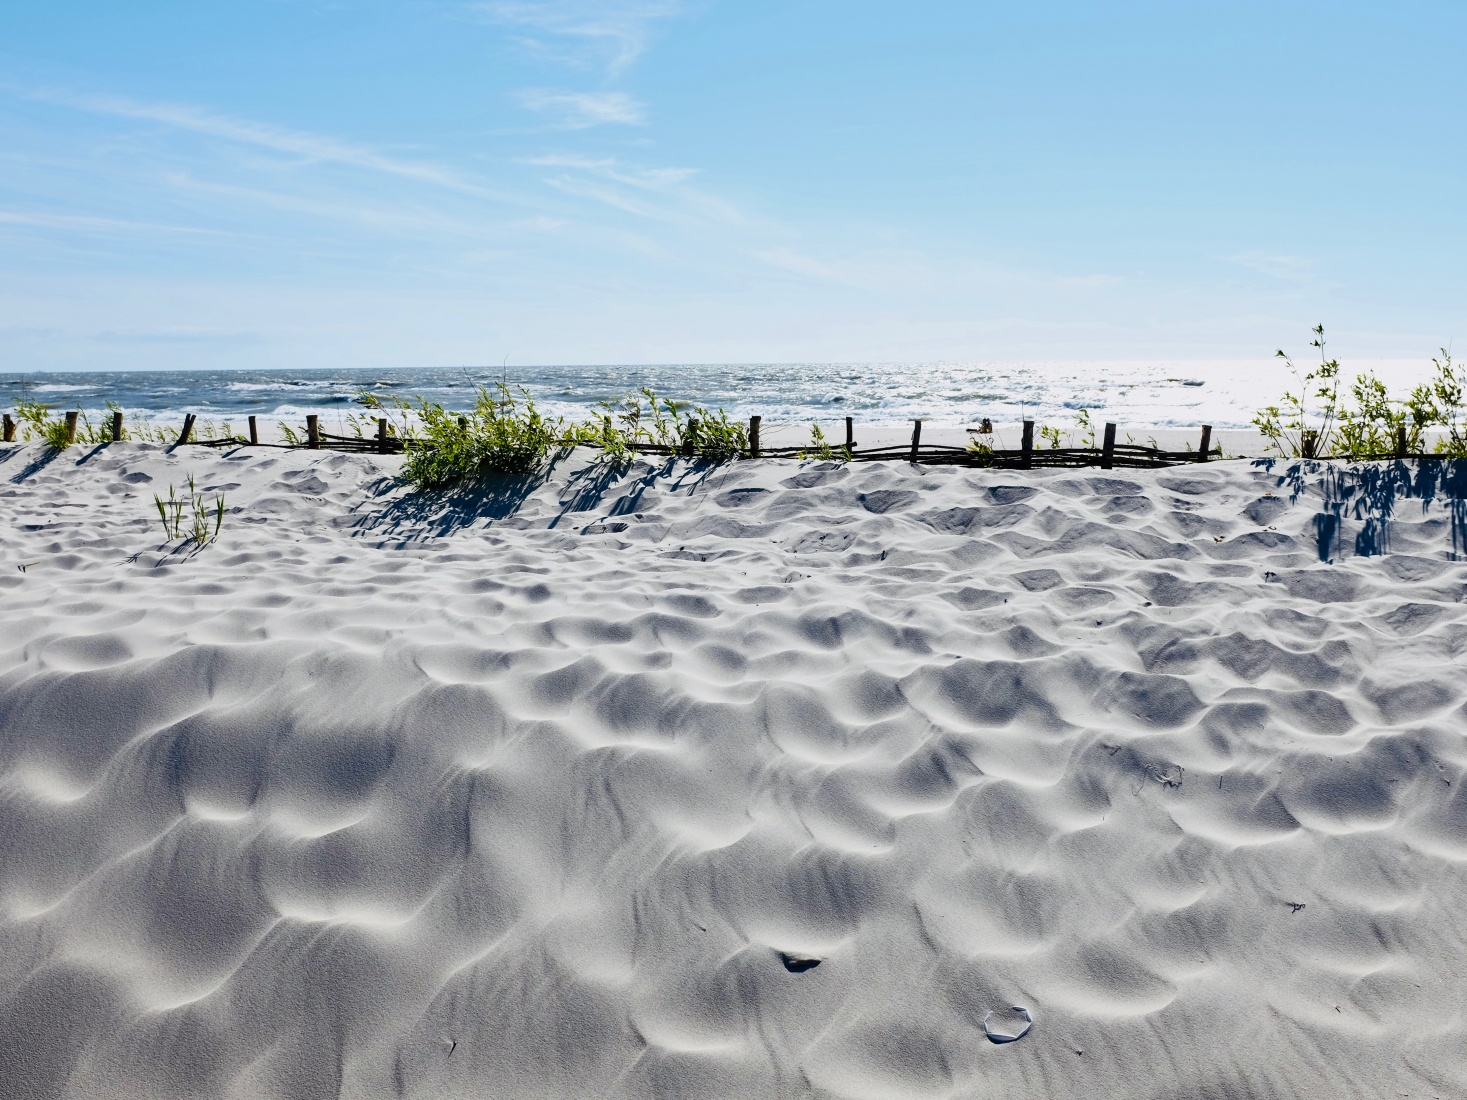 Beautiful white sand beach in Yantarny, outside Kaliningrad, Russia.